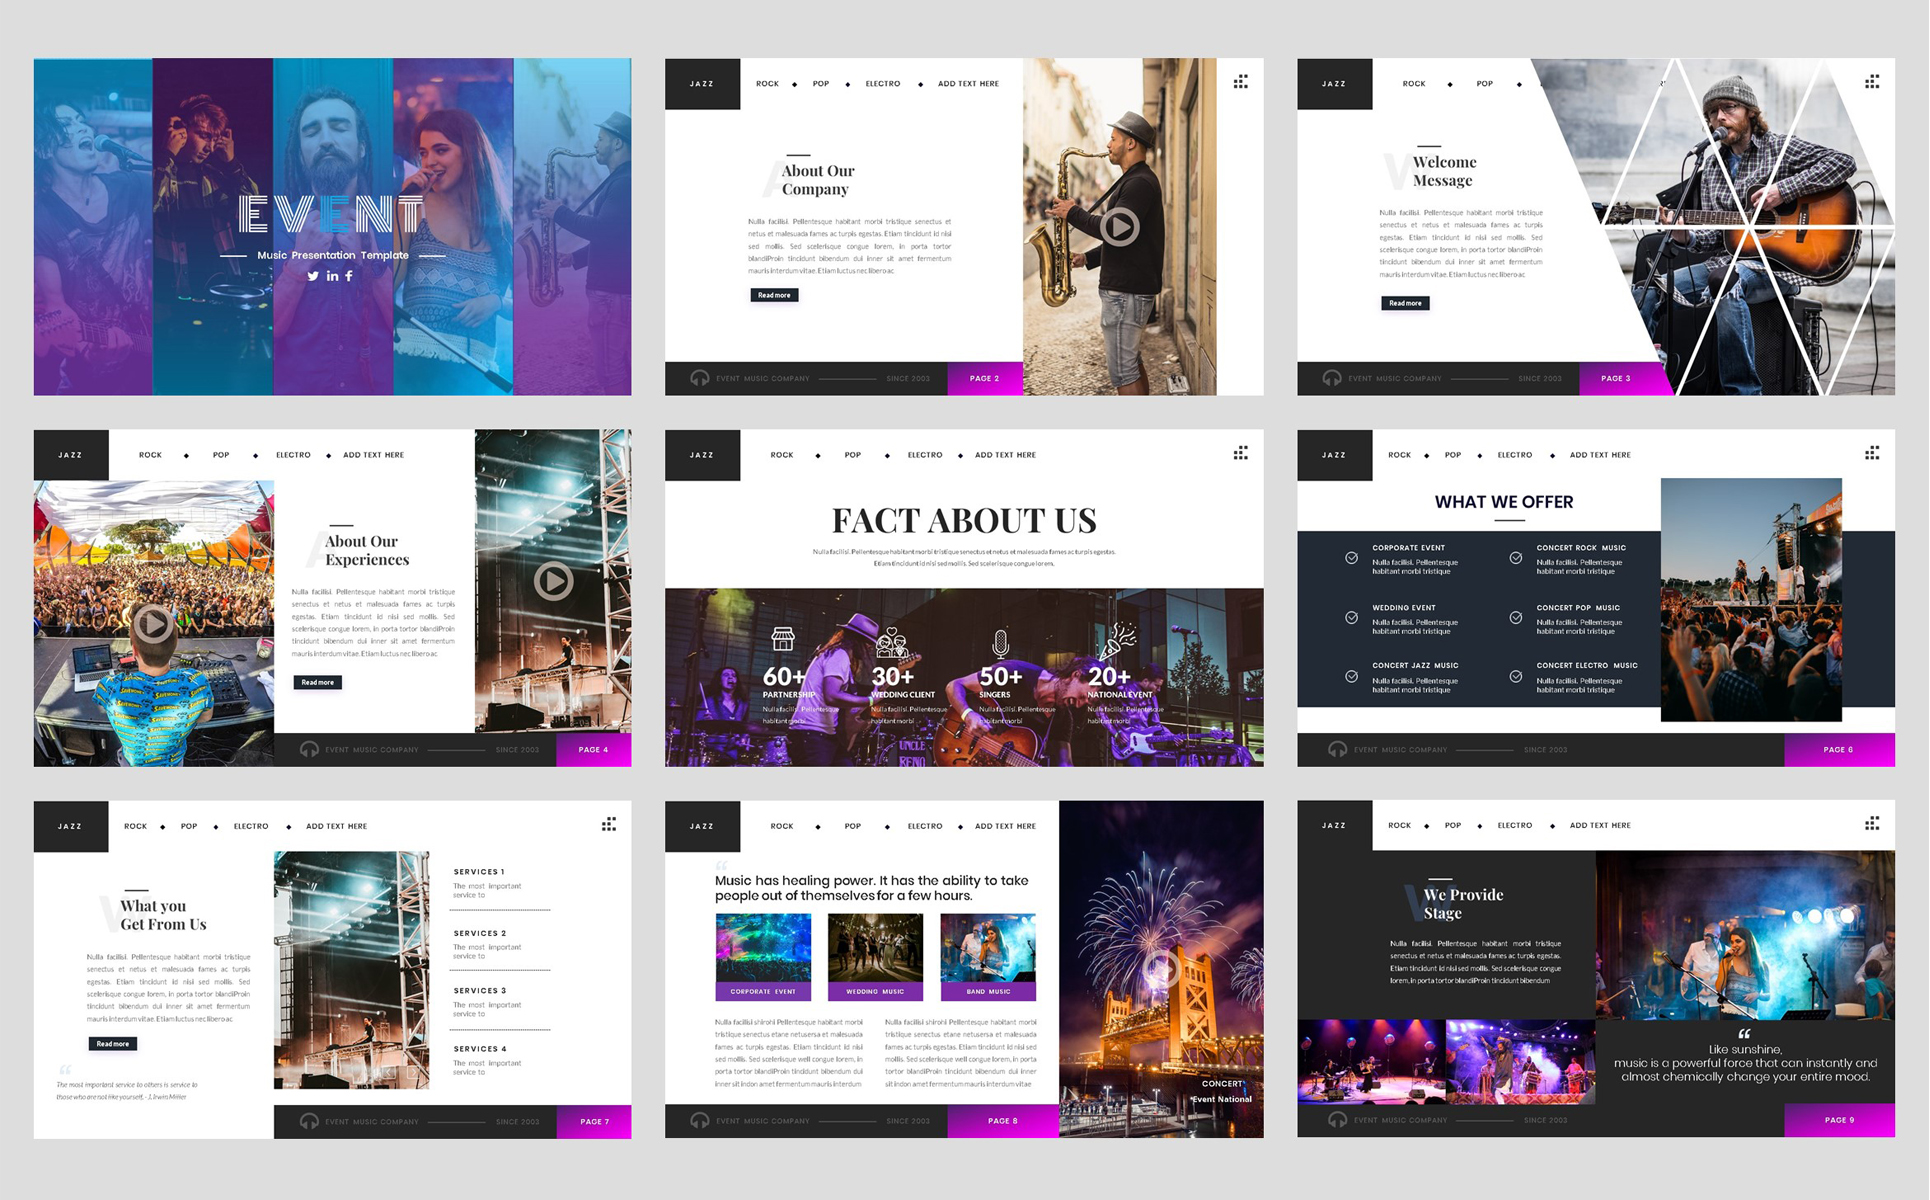 Event-Music PowerPoint Template